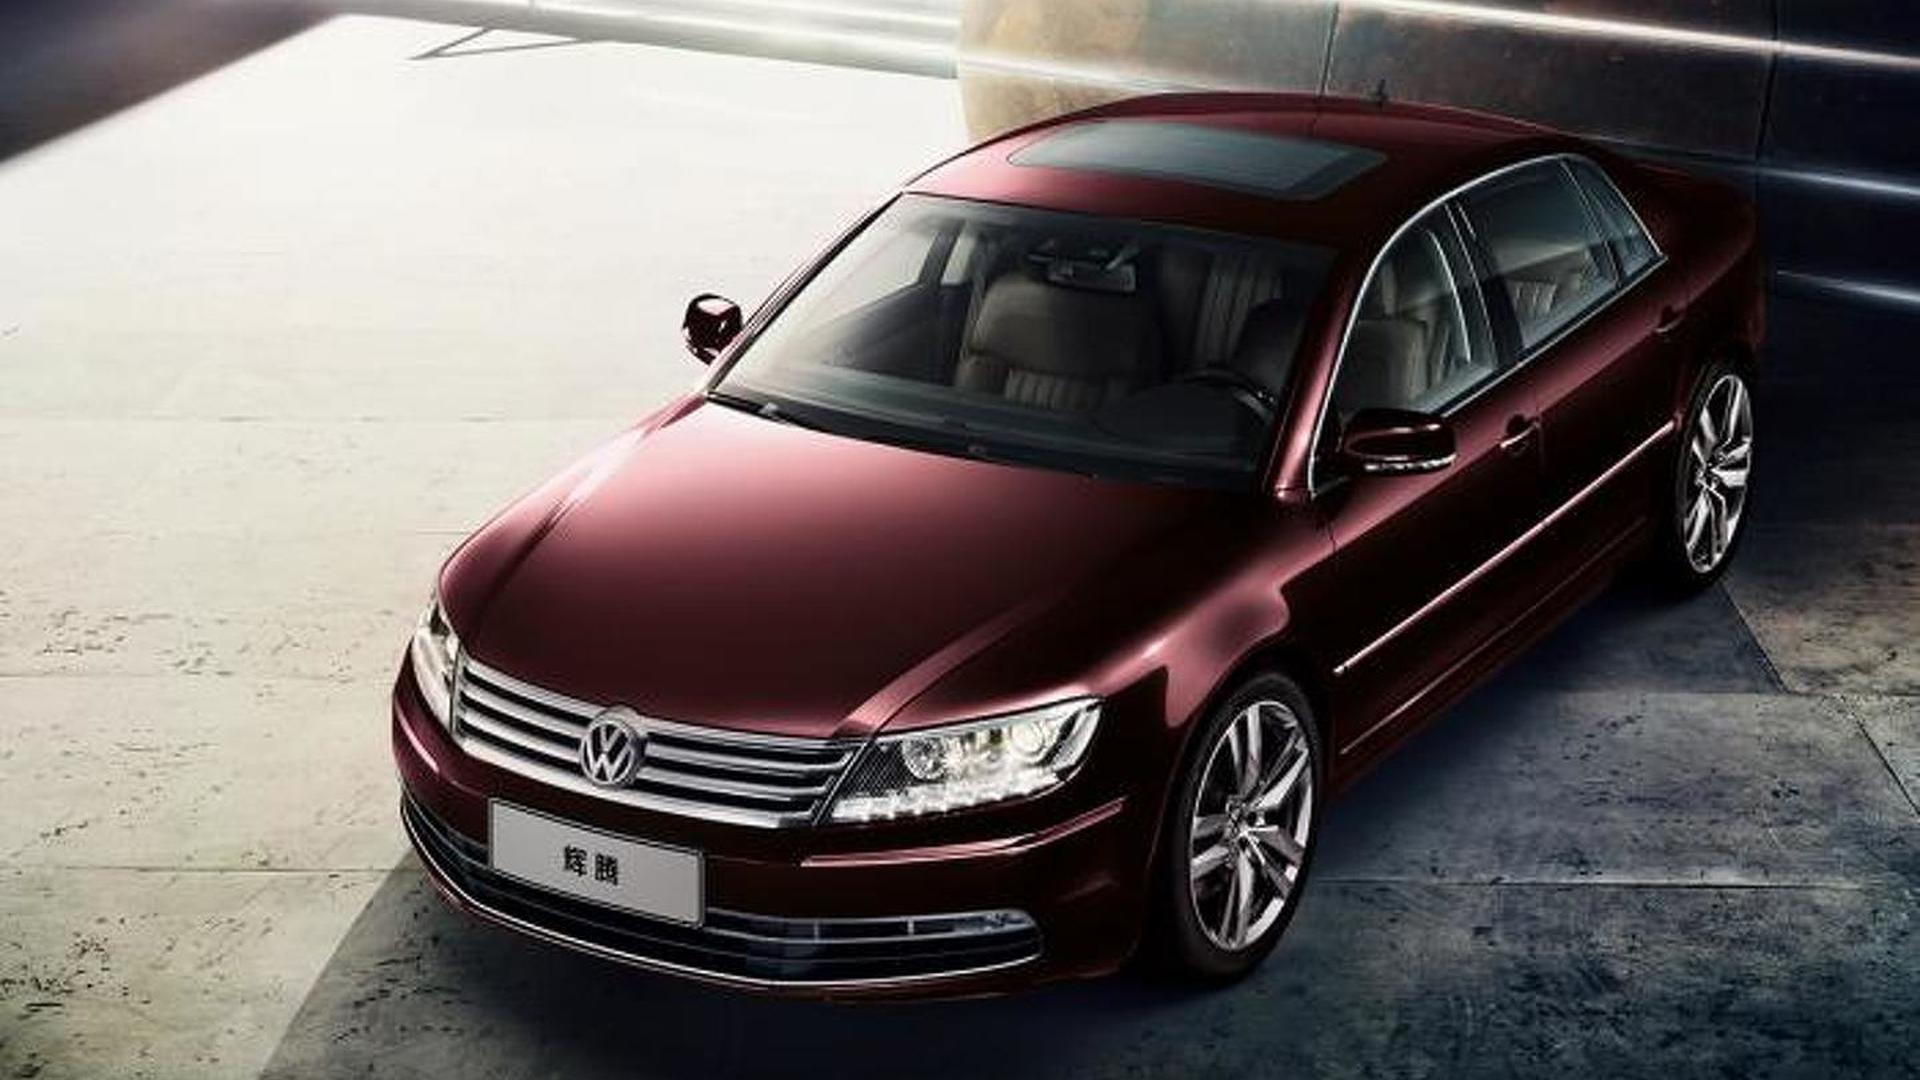 Vw Phaeton Successor To Be Previewed By Electric Concept